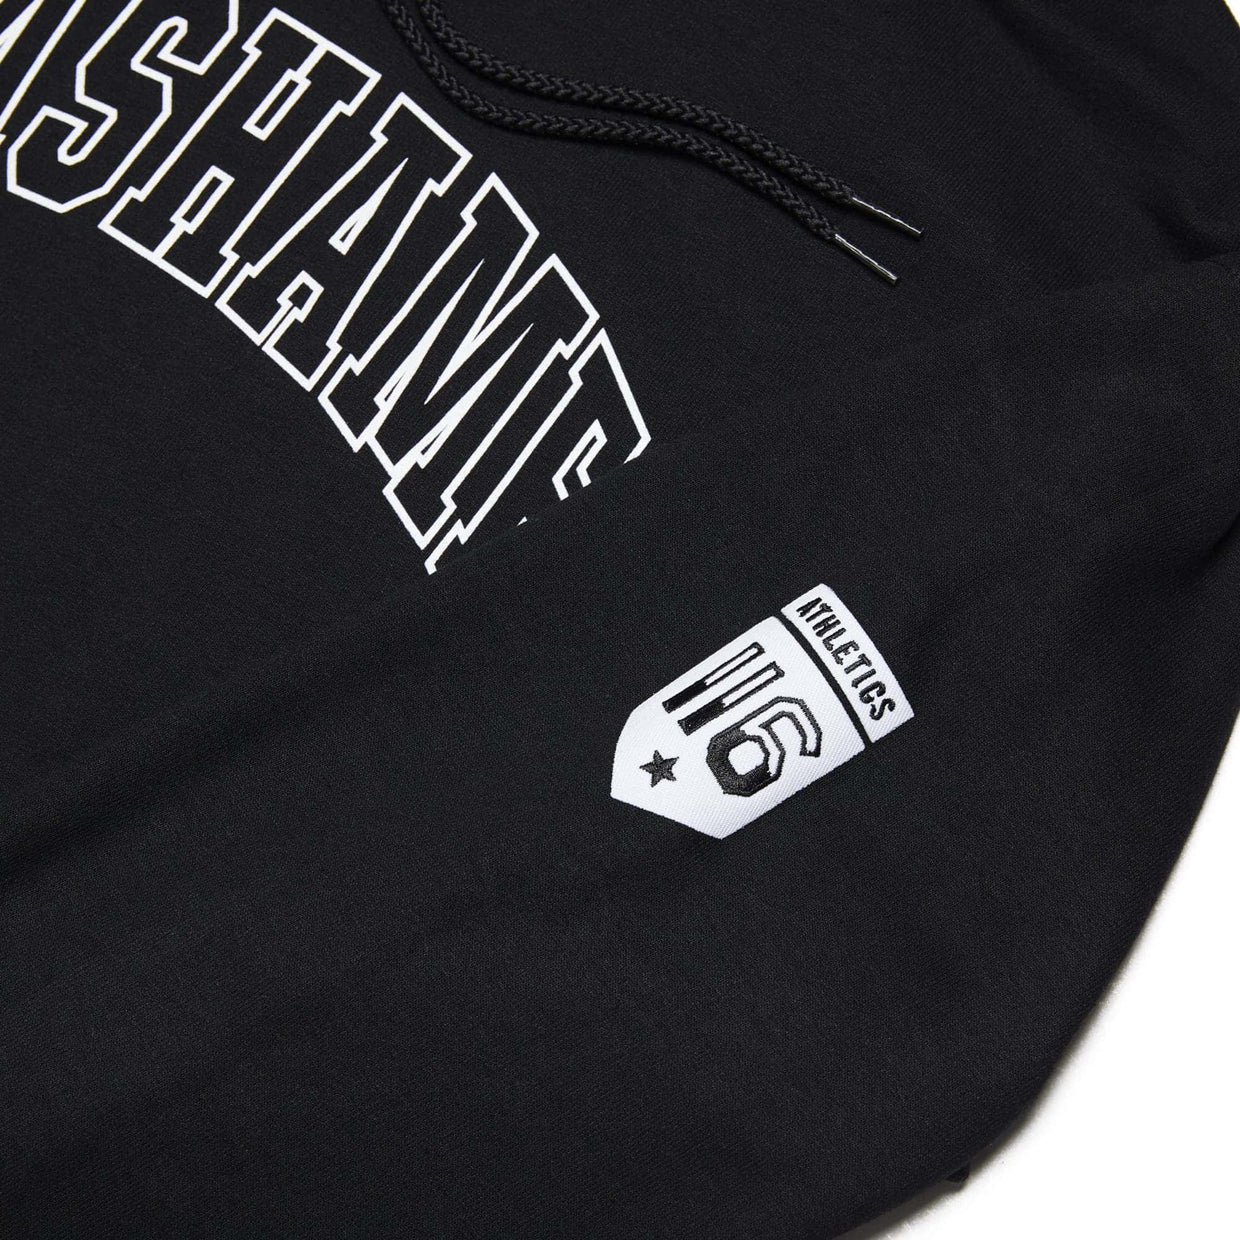 116 Athletics x Champion Hoodie